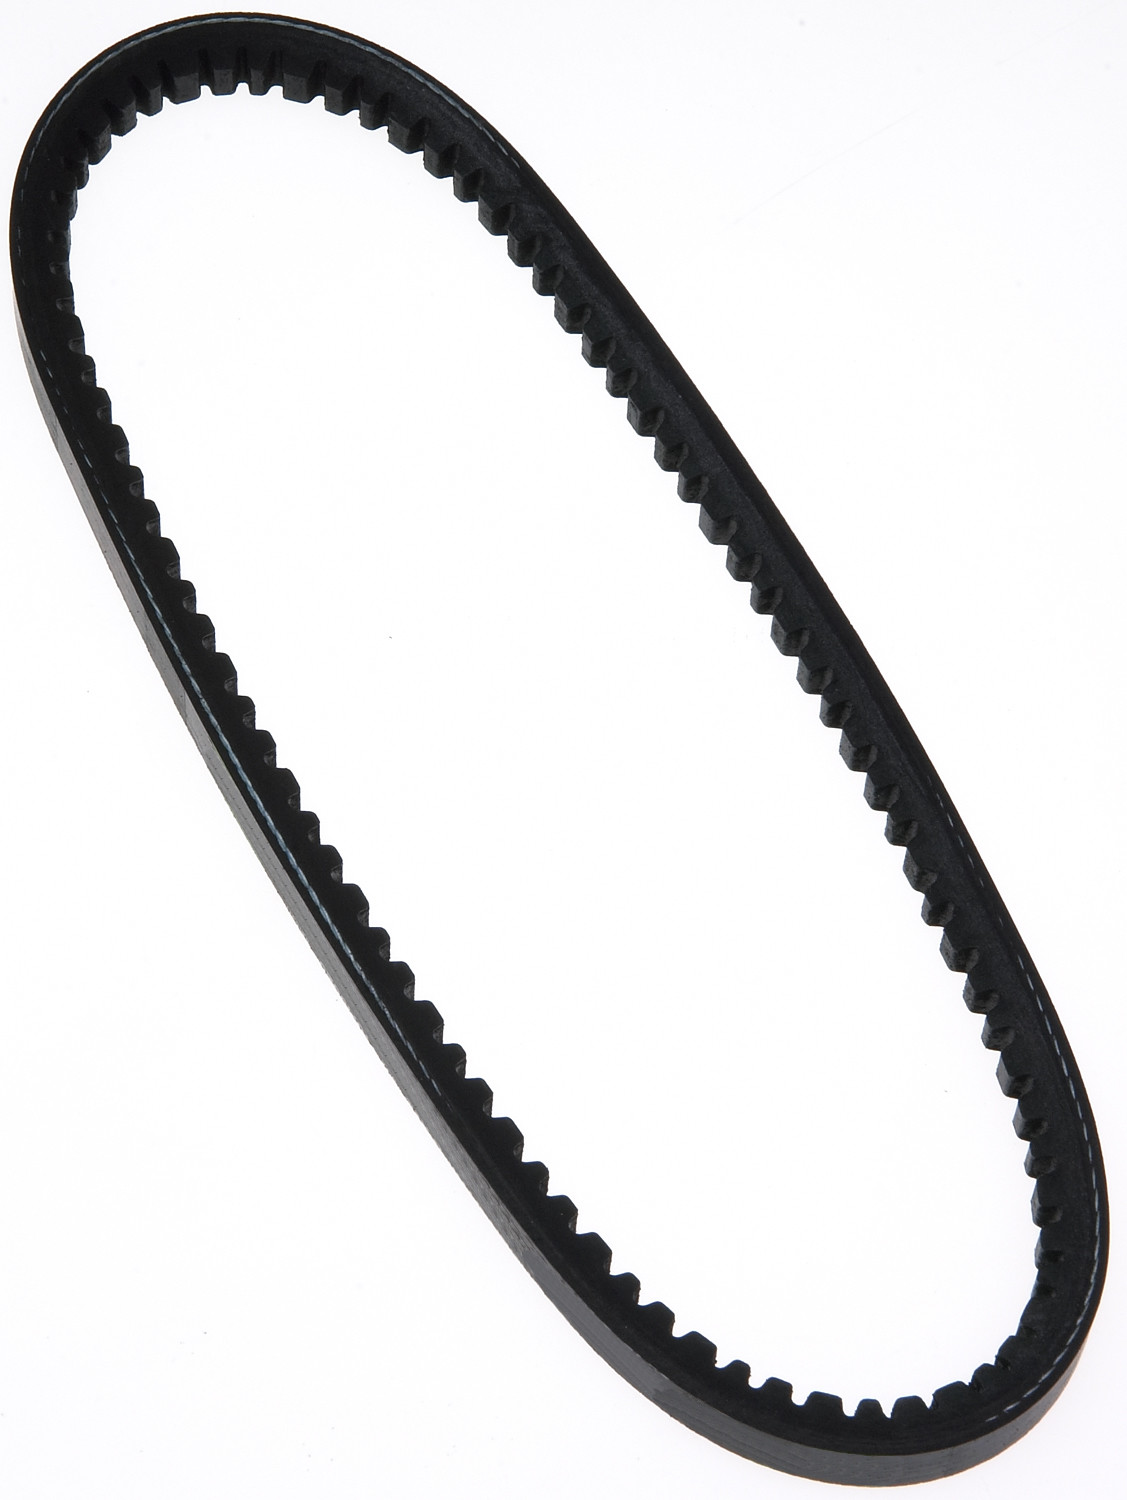 ROADMAX - High Capacity V-belt(standard) - RMX 17440AP